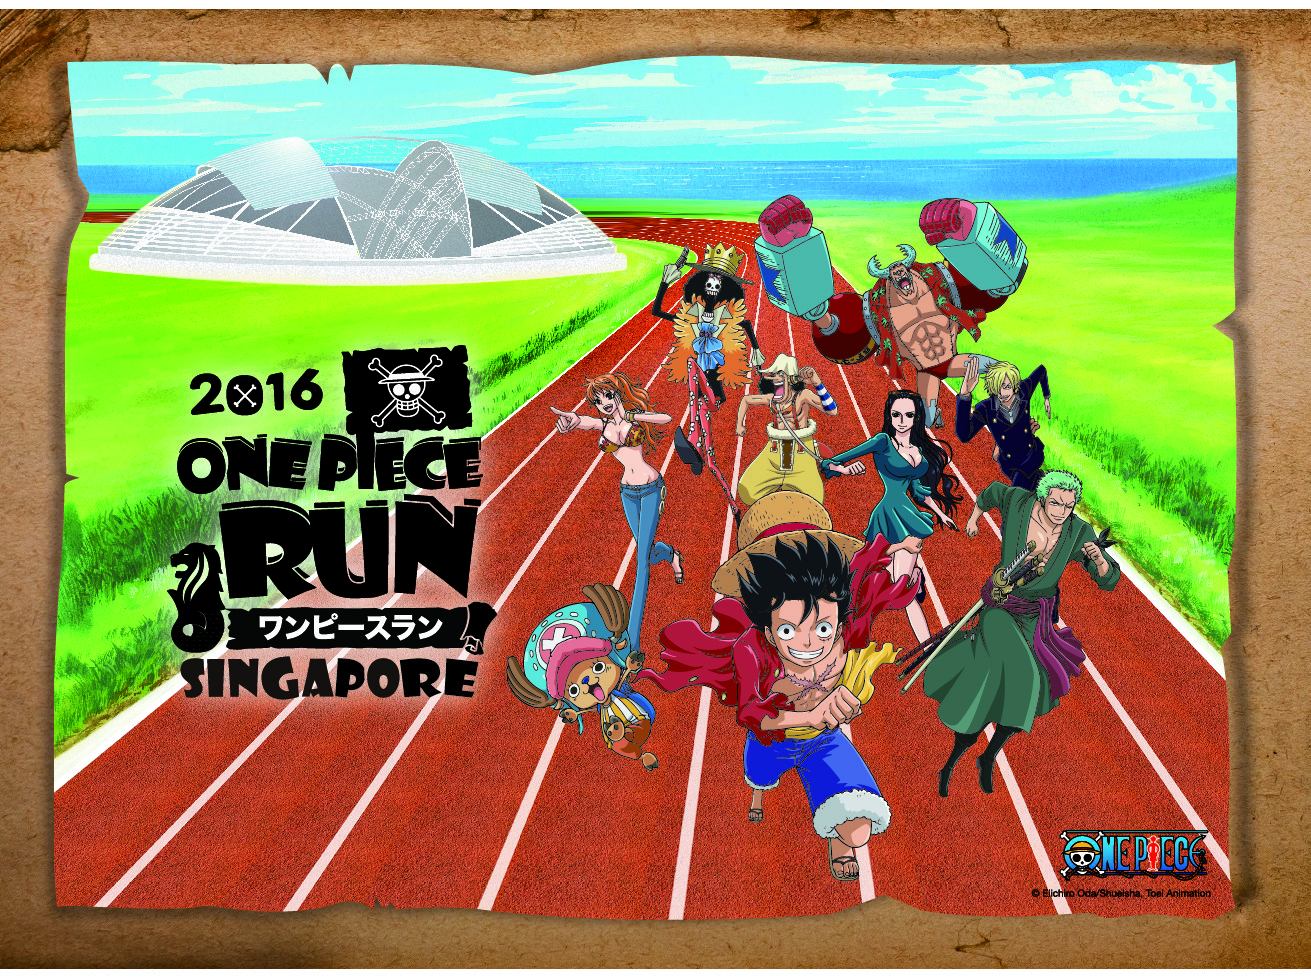 One Piece Run Singapore 2016